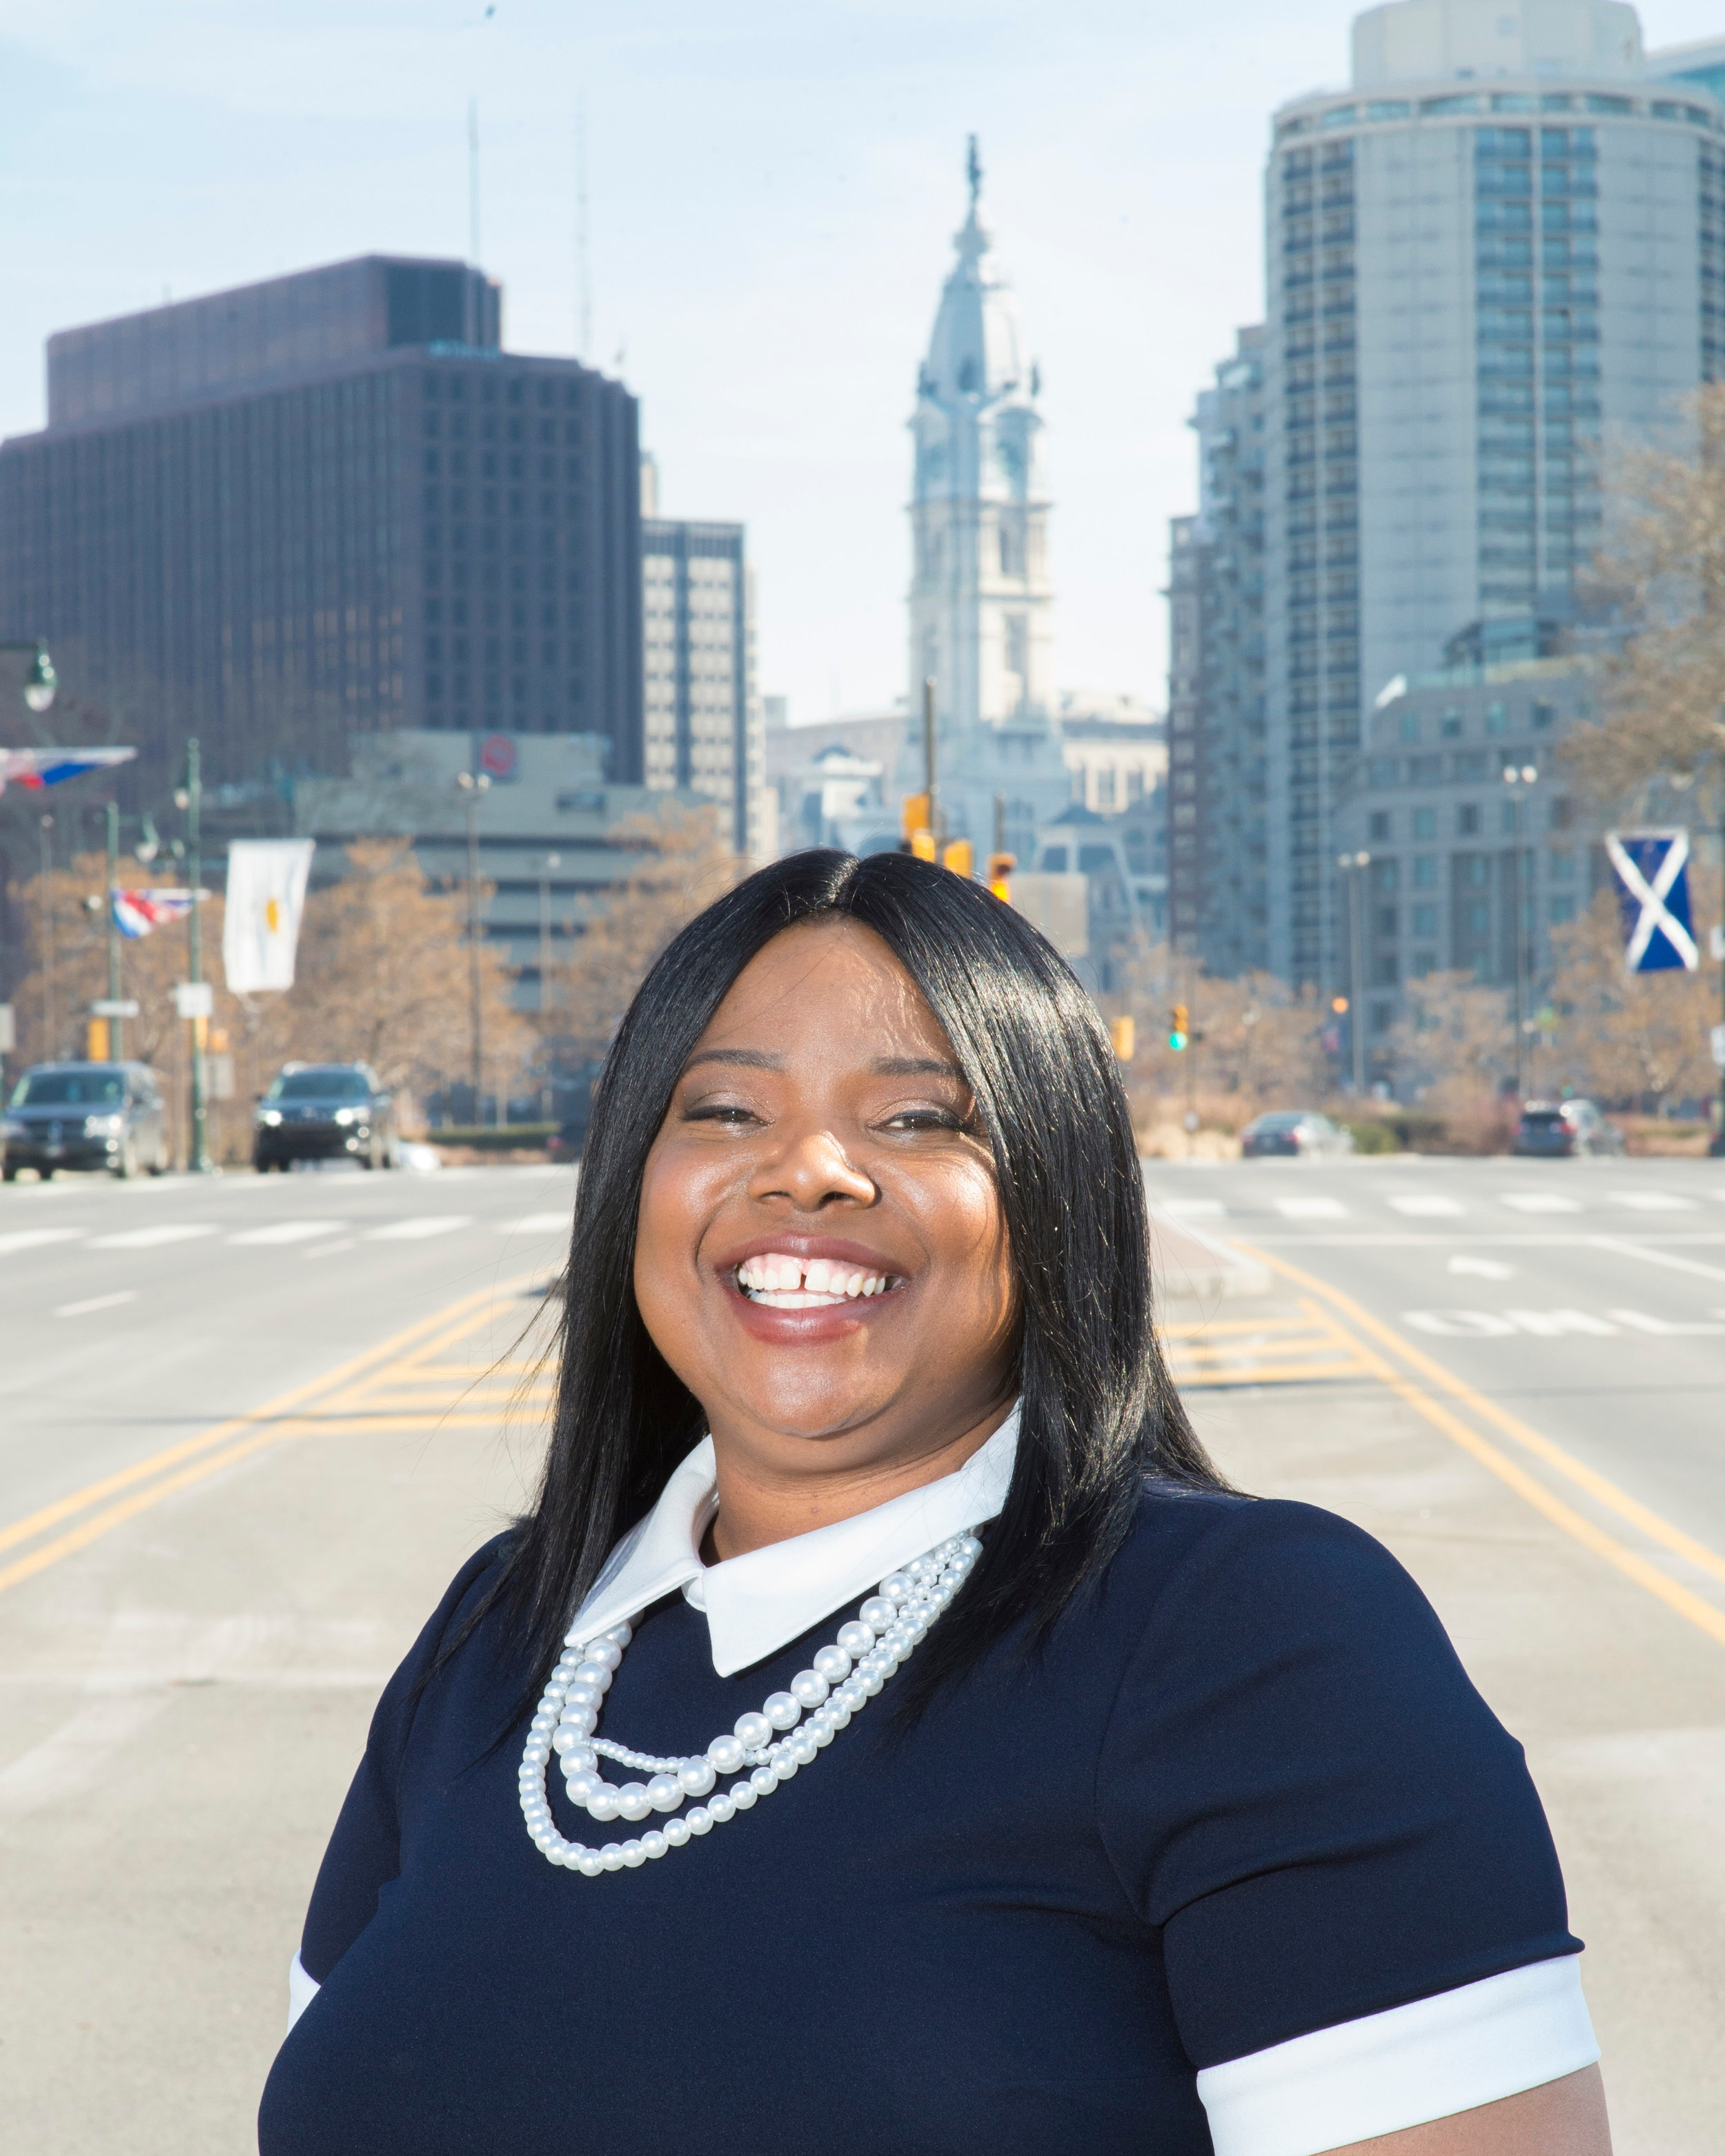 Carla Cain - wants to push voter registration and turnout as City Commissioner